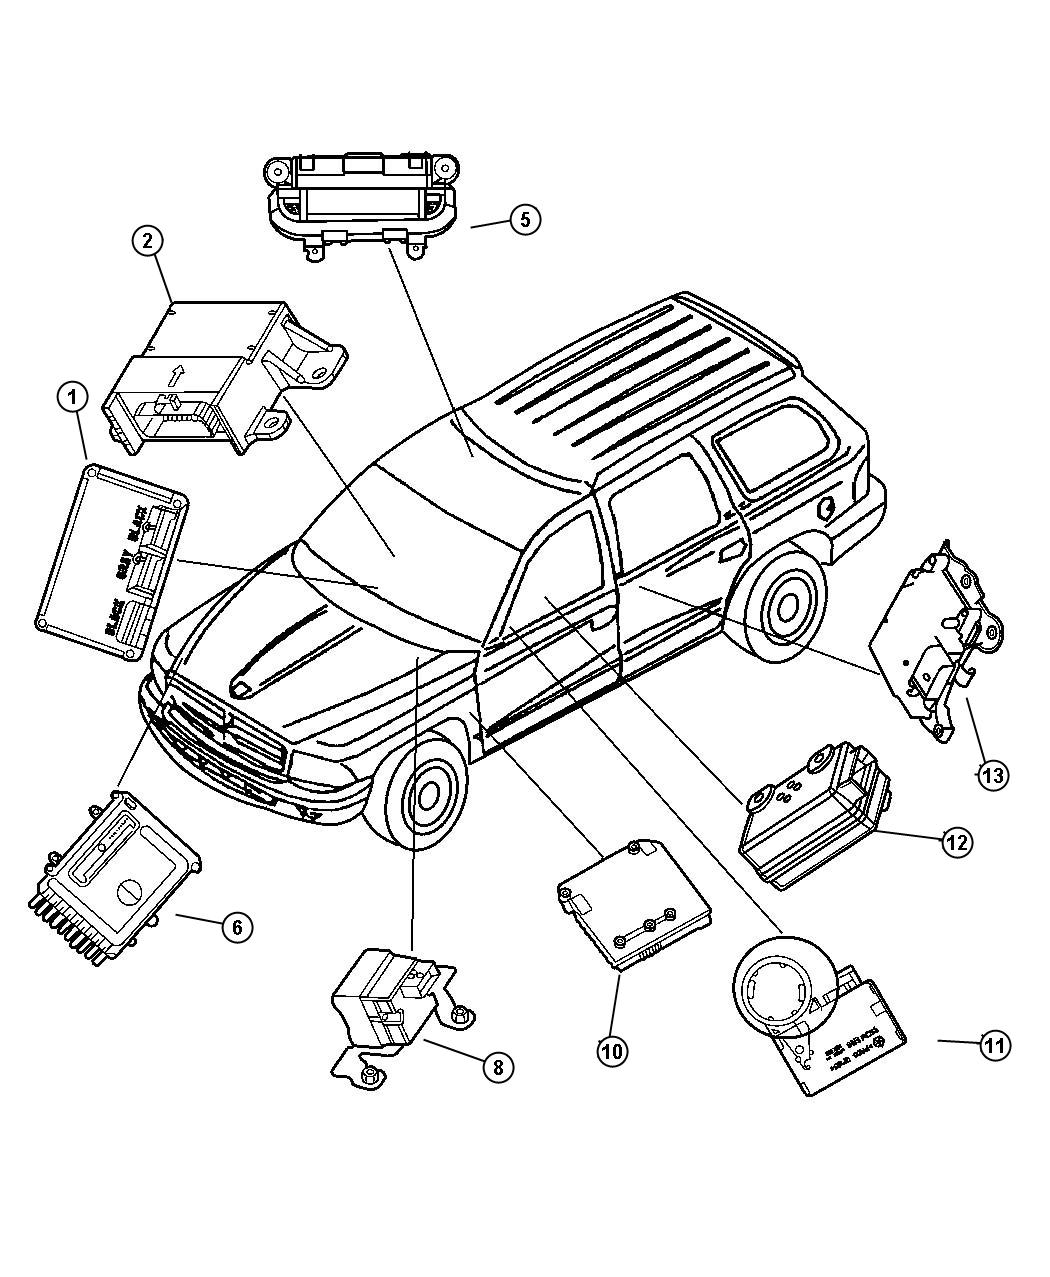 03 dodge neon engine diagram 03 free wiring diagrams